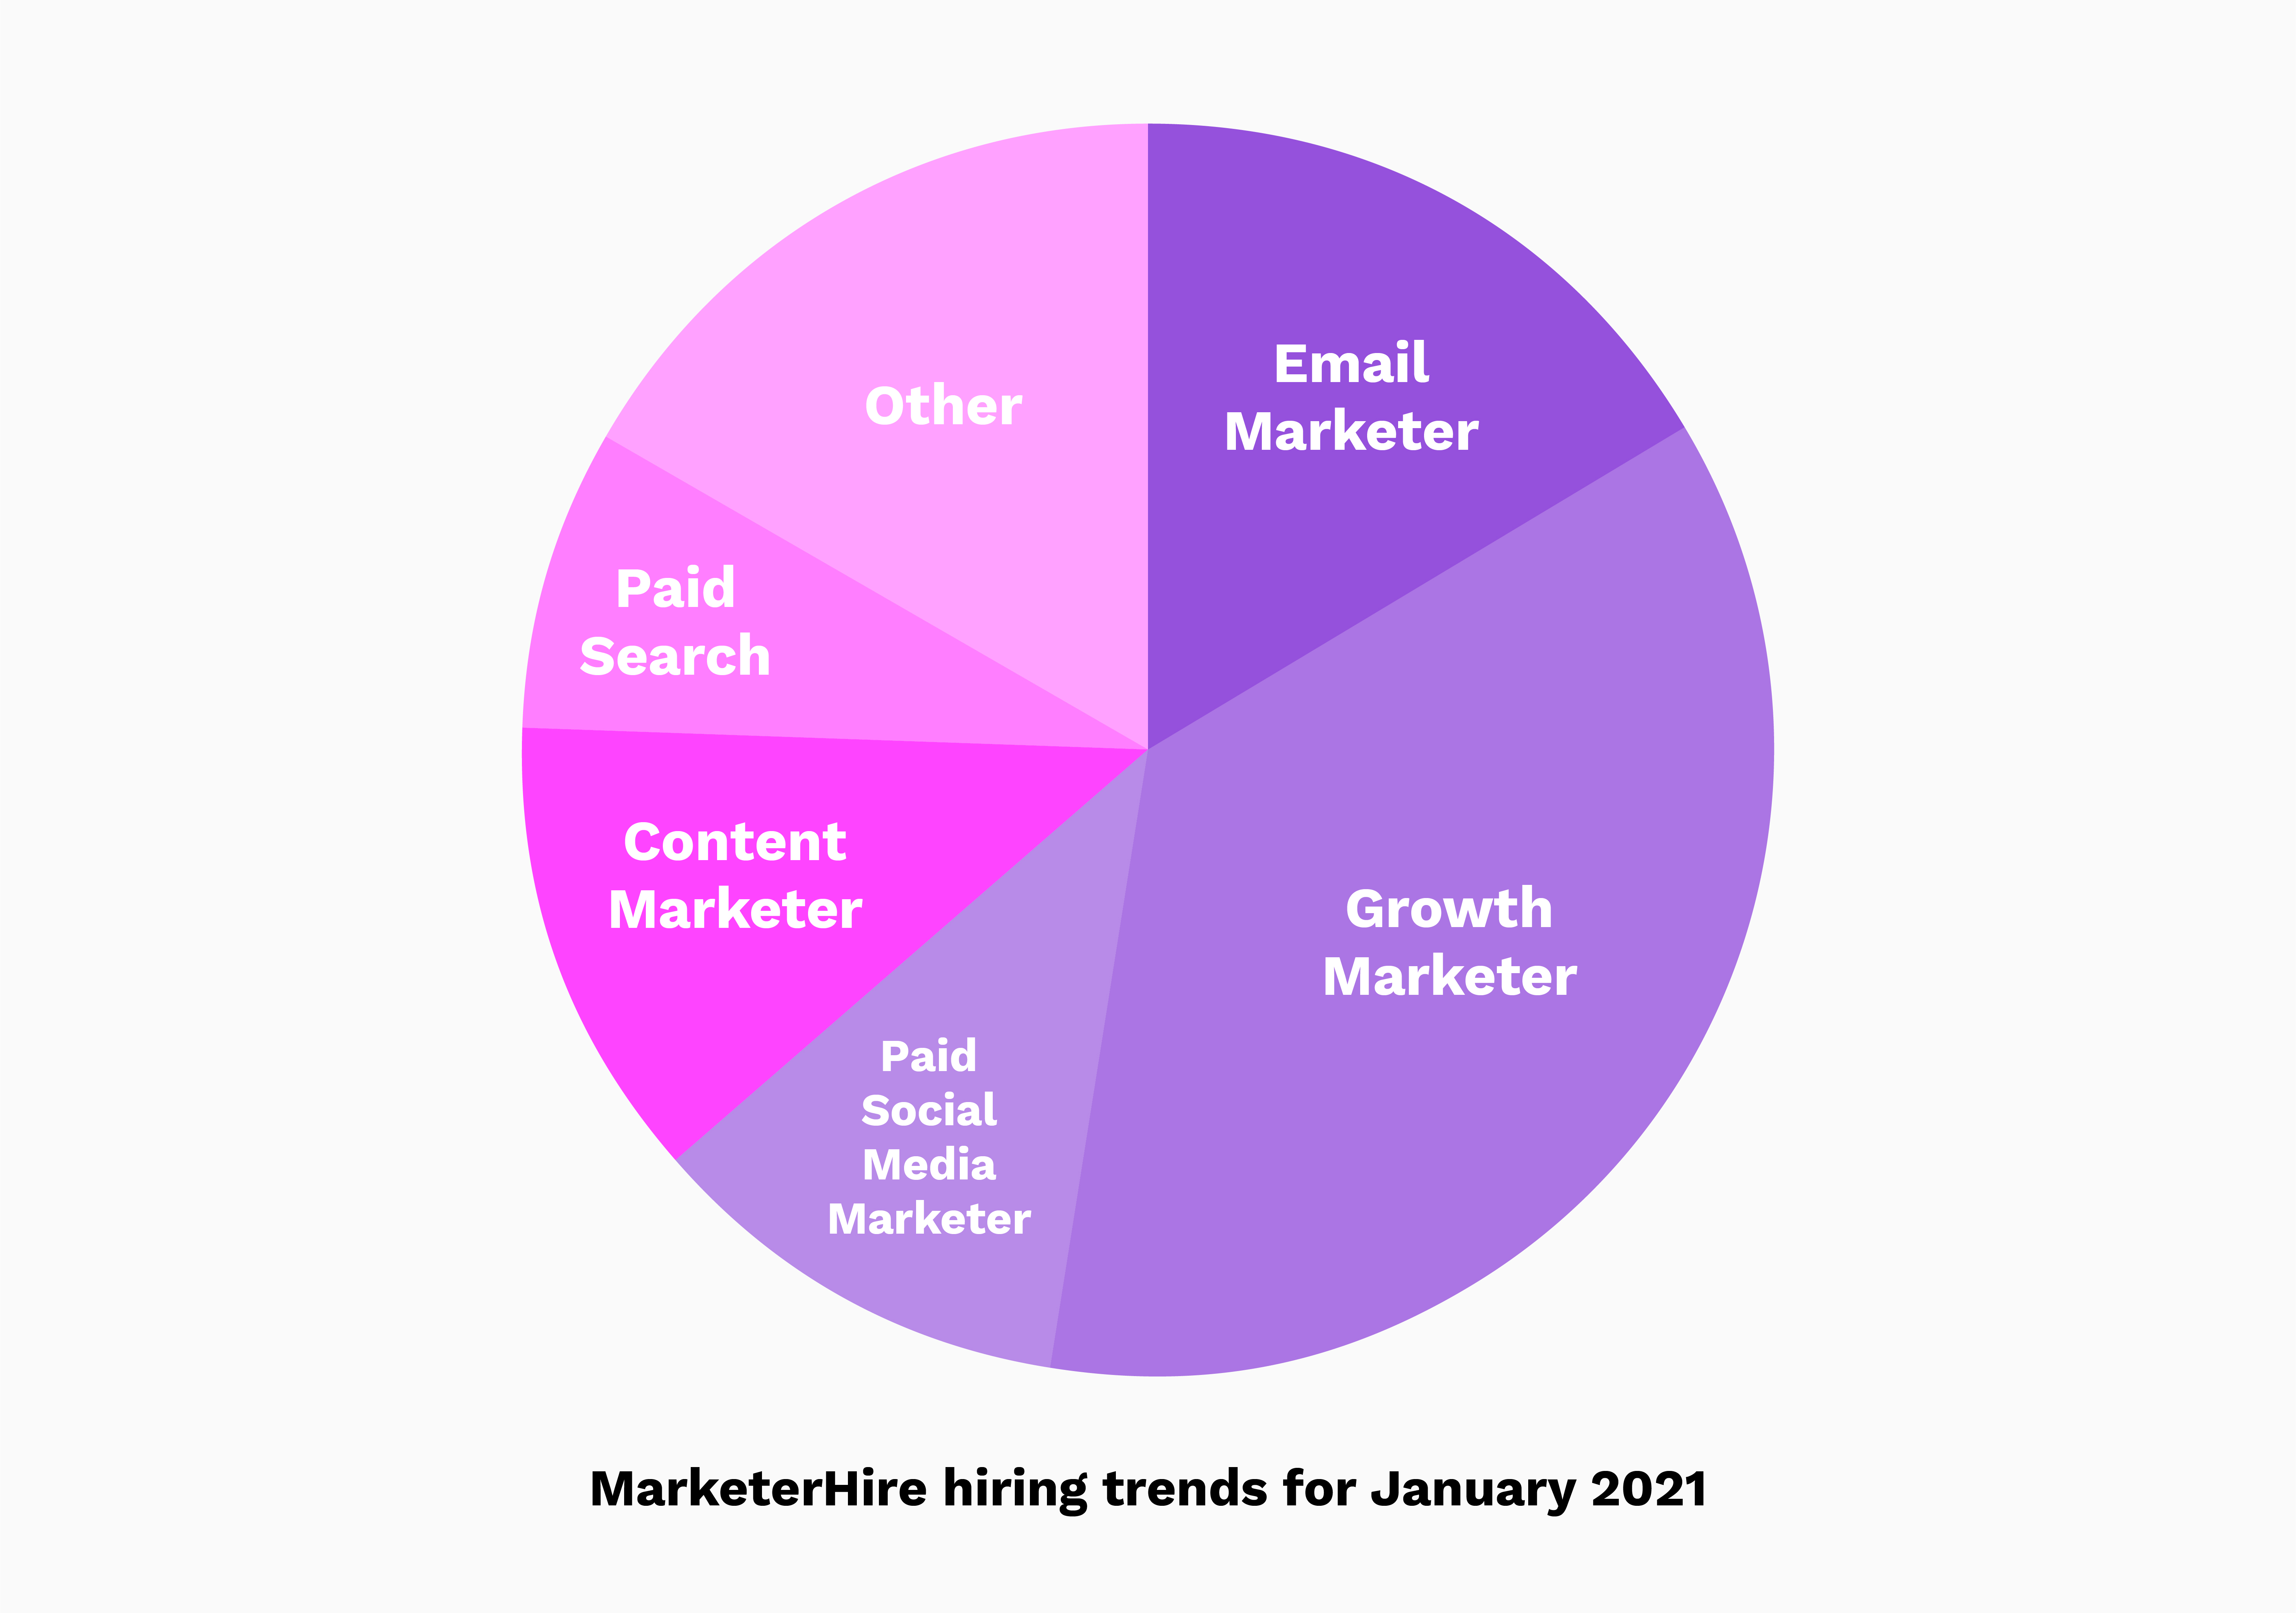 Marketing hiring trends in January 2021